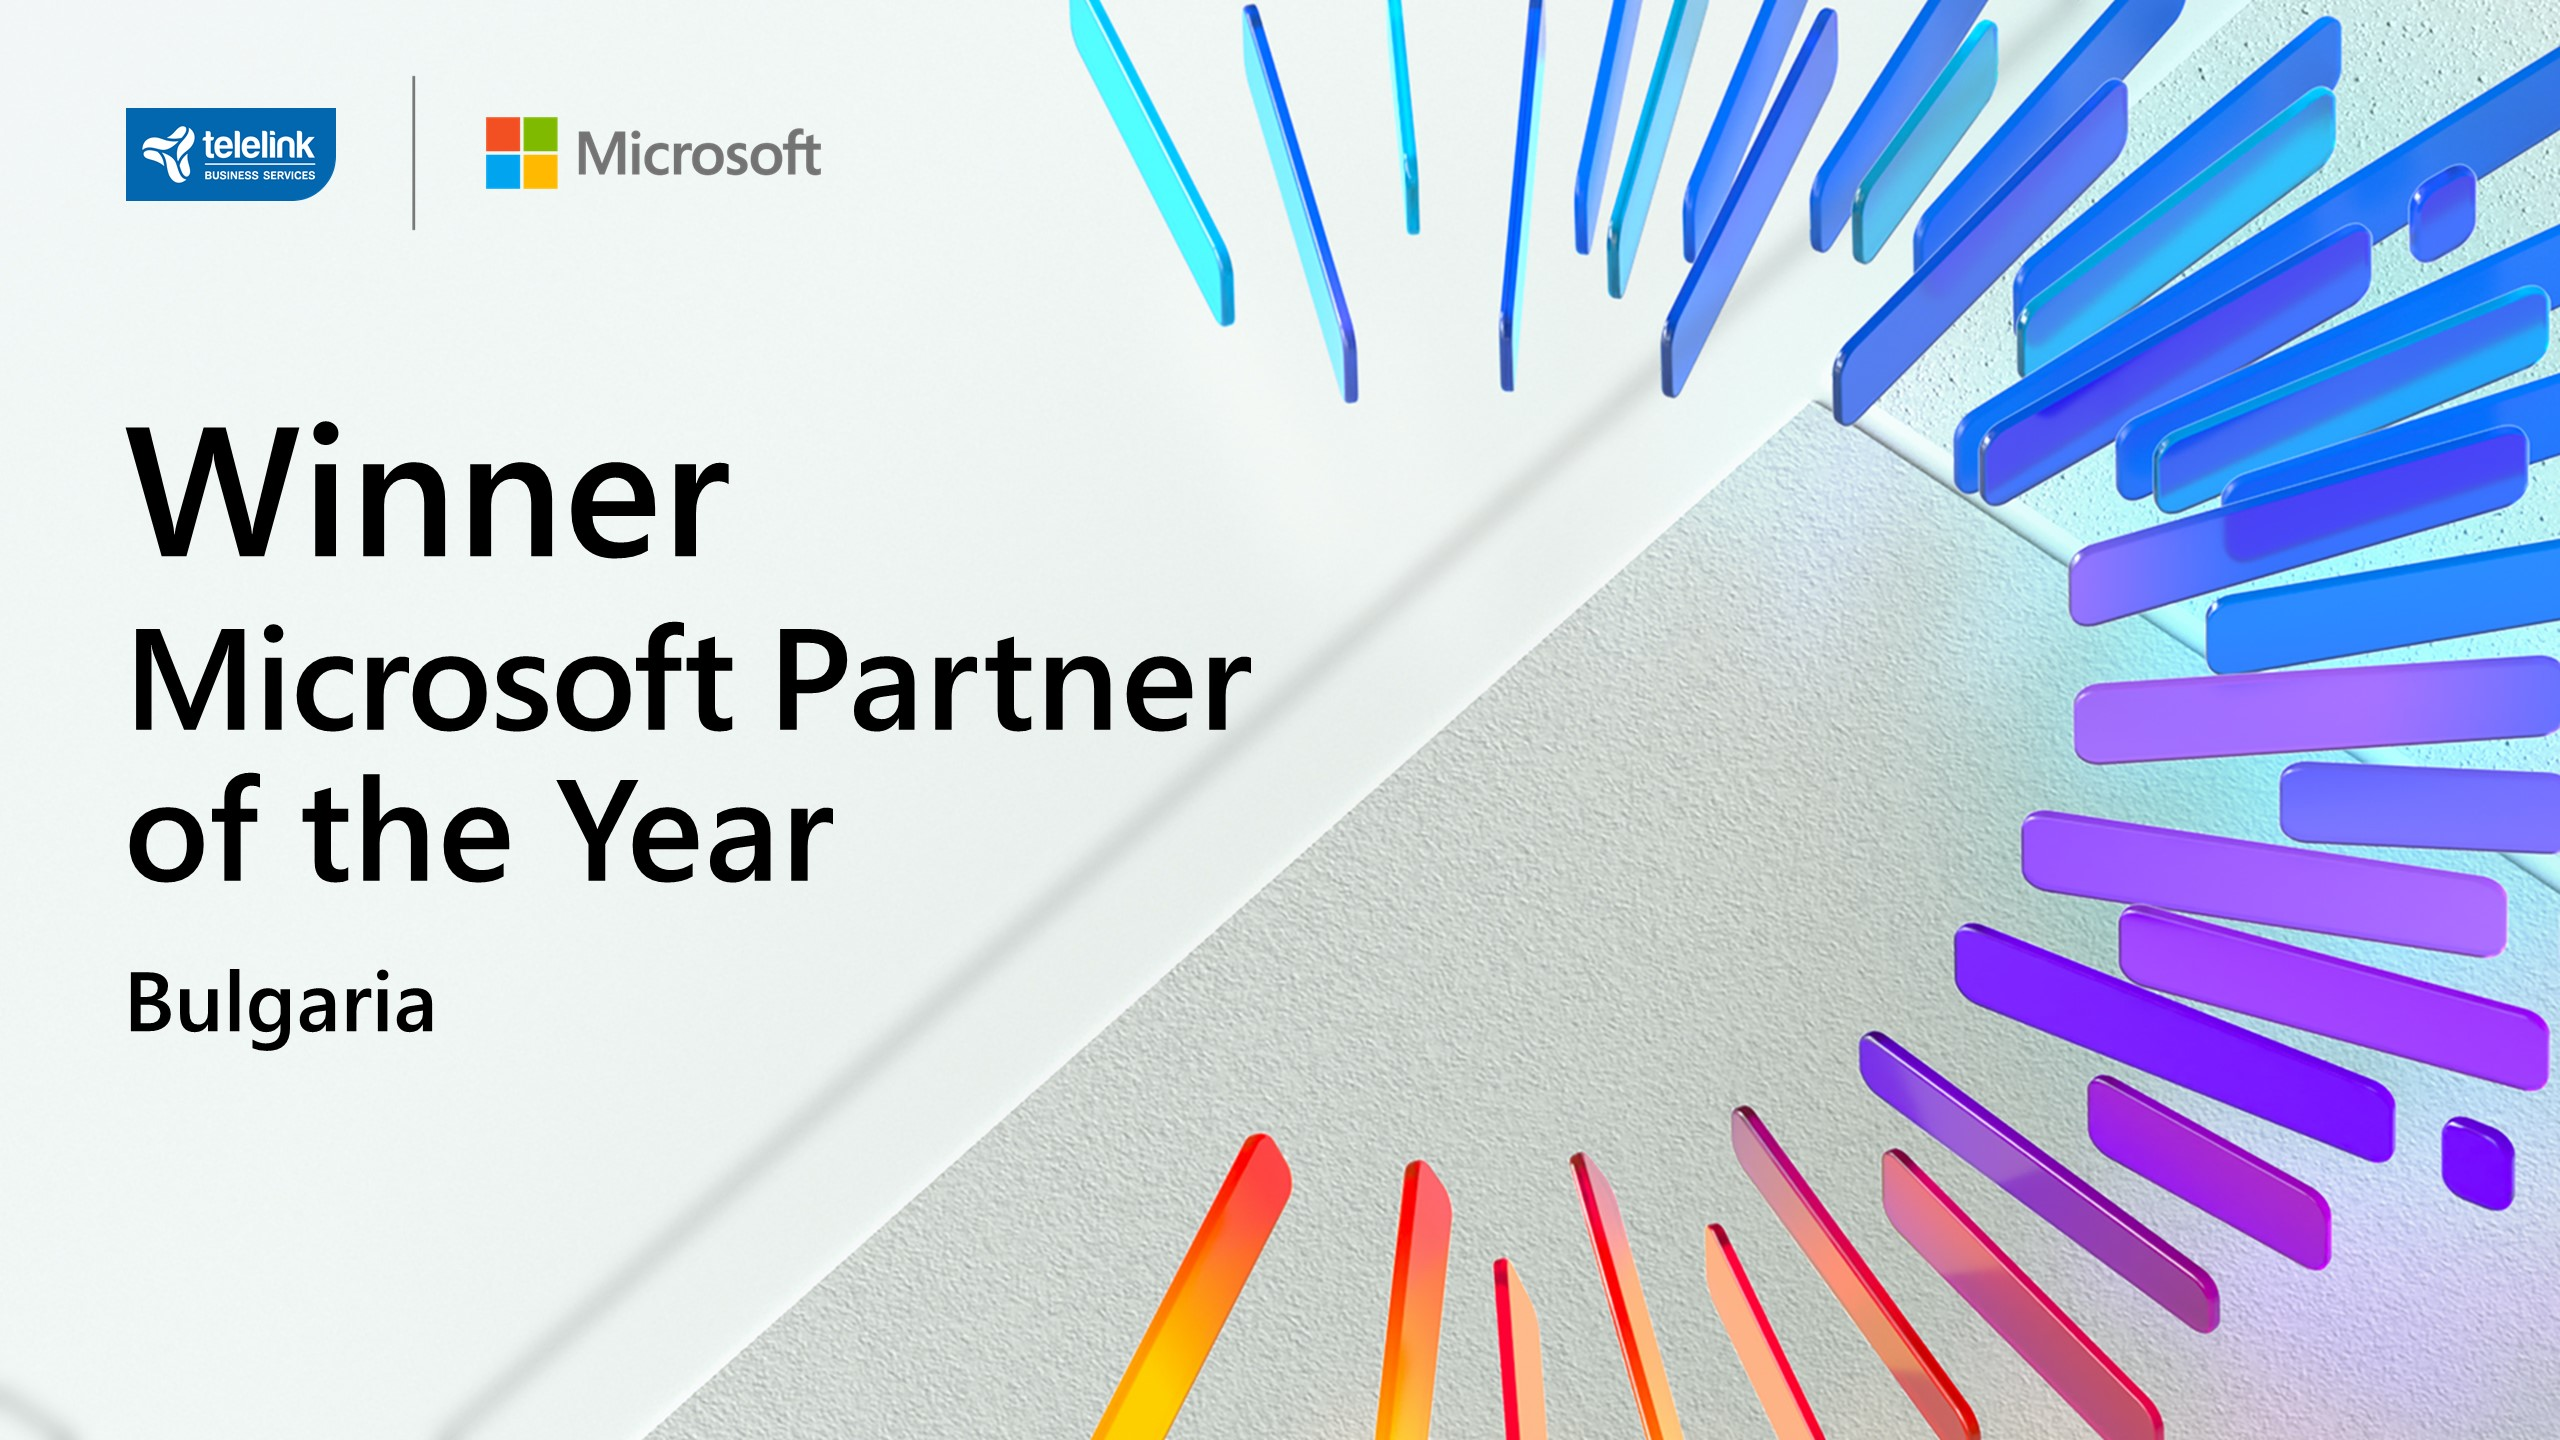 Telelink Business Services Recognized as Winner of Bulgaria 2020 Microsoft Partner of The Year